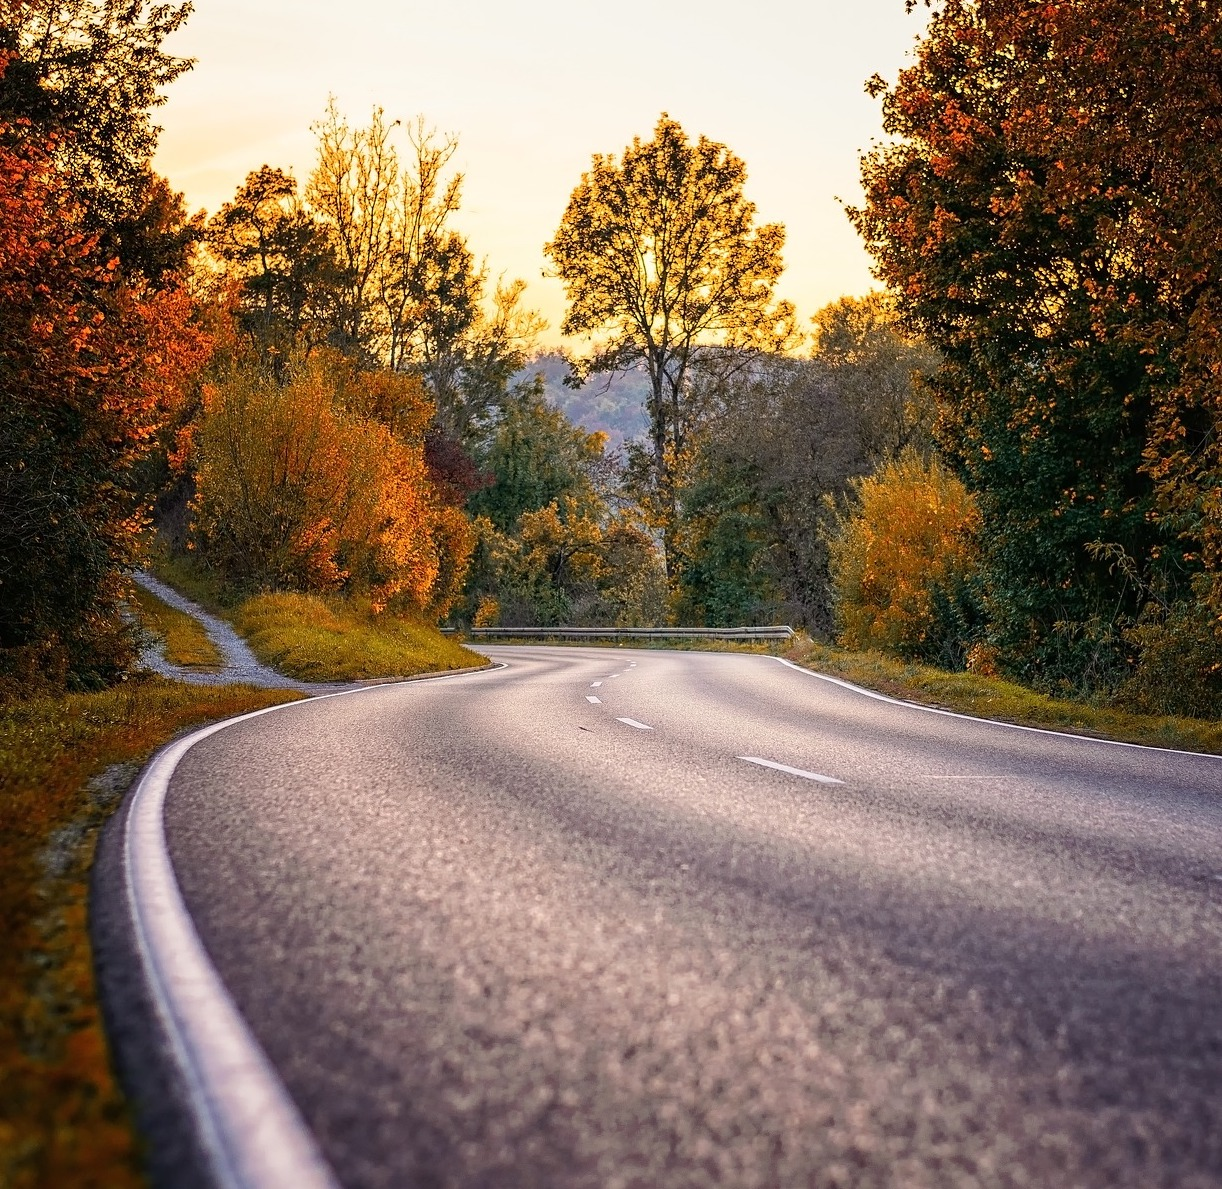 https://pixabay.com/photos/road-curve-s-curve-asphalt-route-3777610/